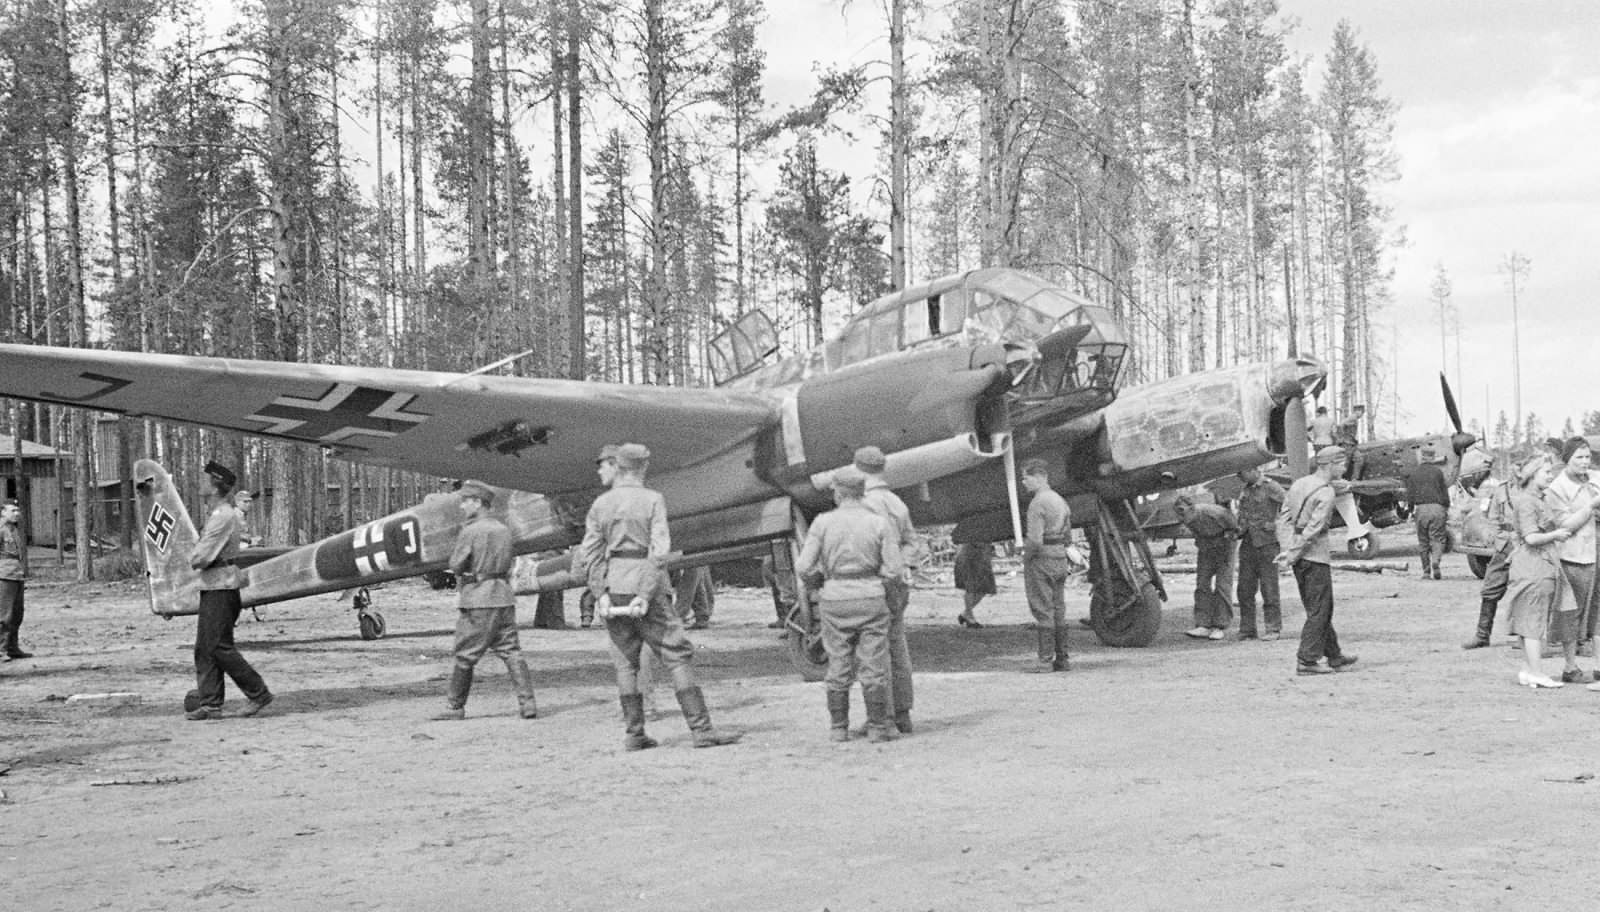 Fw 189 A-3 Uhu of the 1.(H)/32 V7+1J June 1943 2